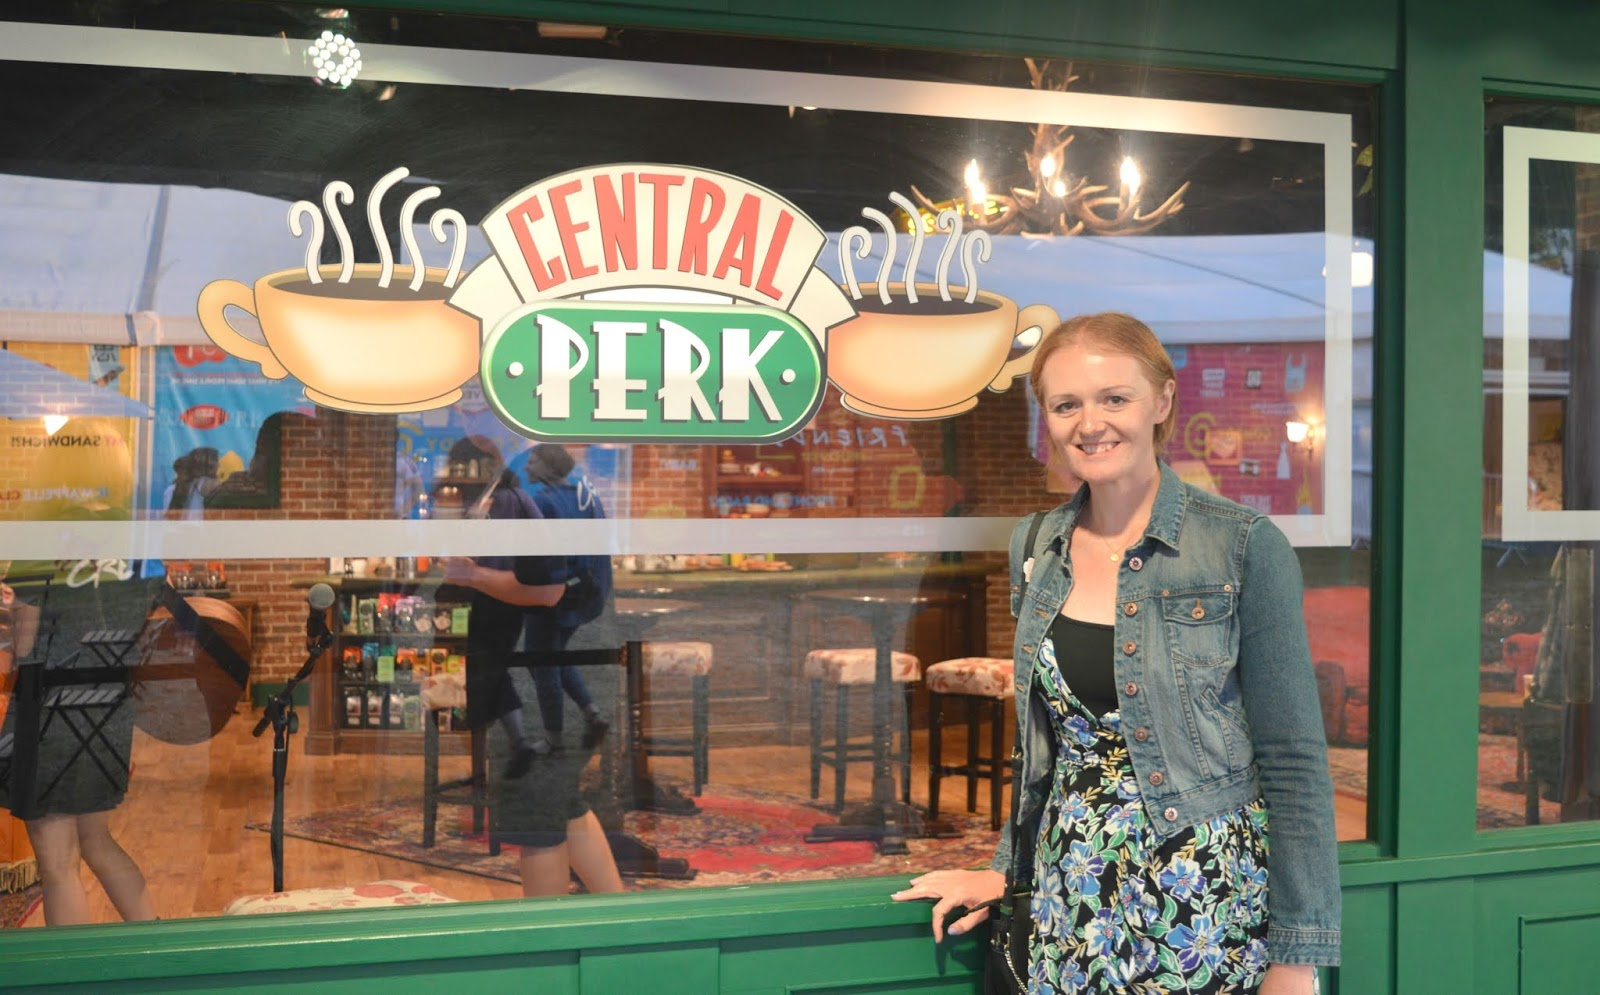 Friends Fest Newcastle  - Central Perk